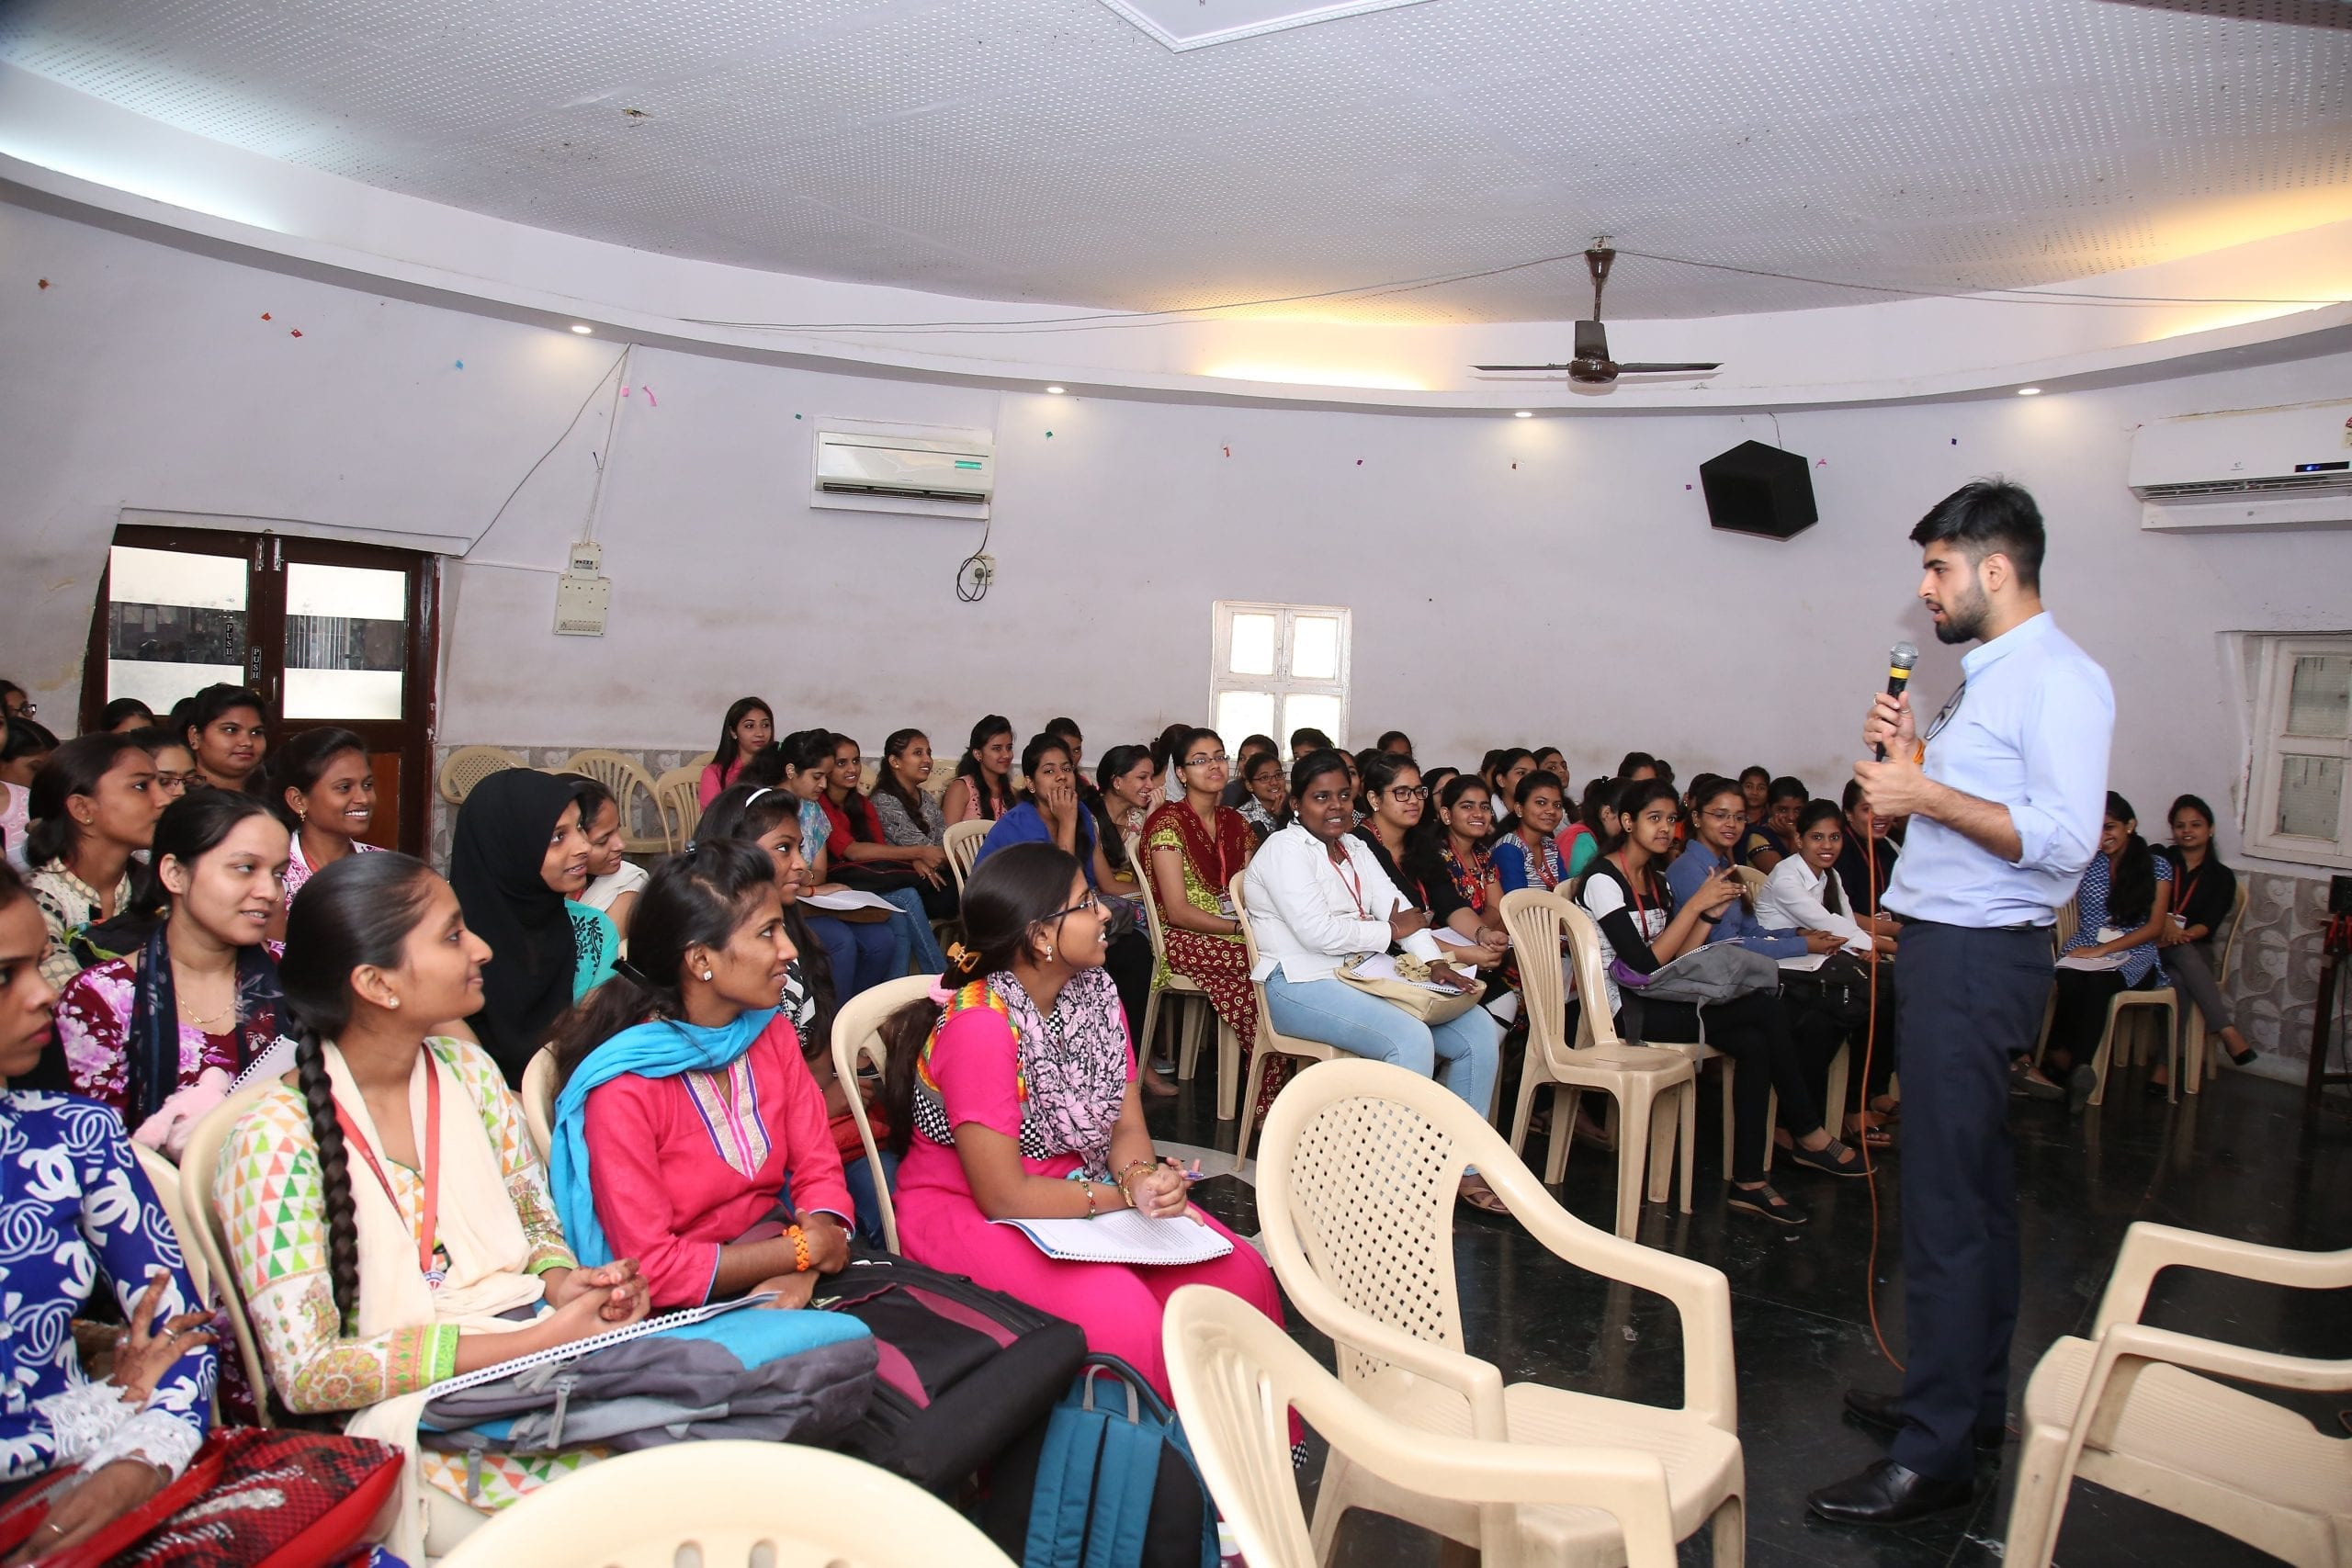 A group of young adults learning about formal work opportunities at a workshop in India